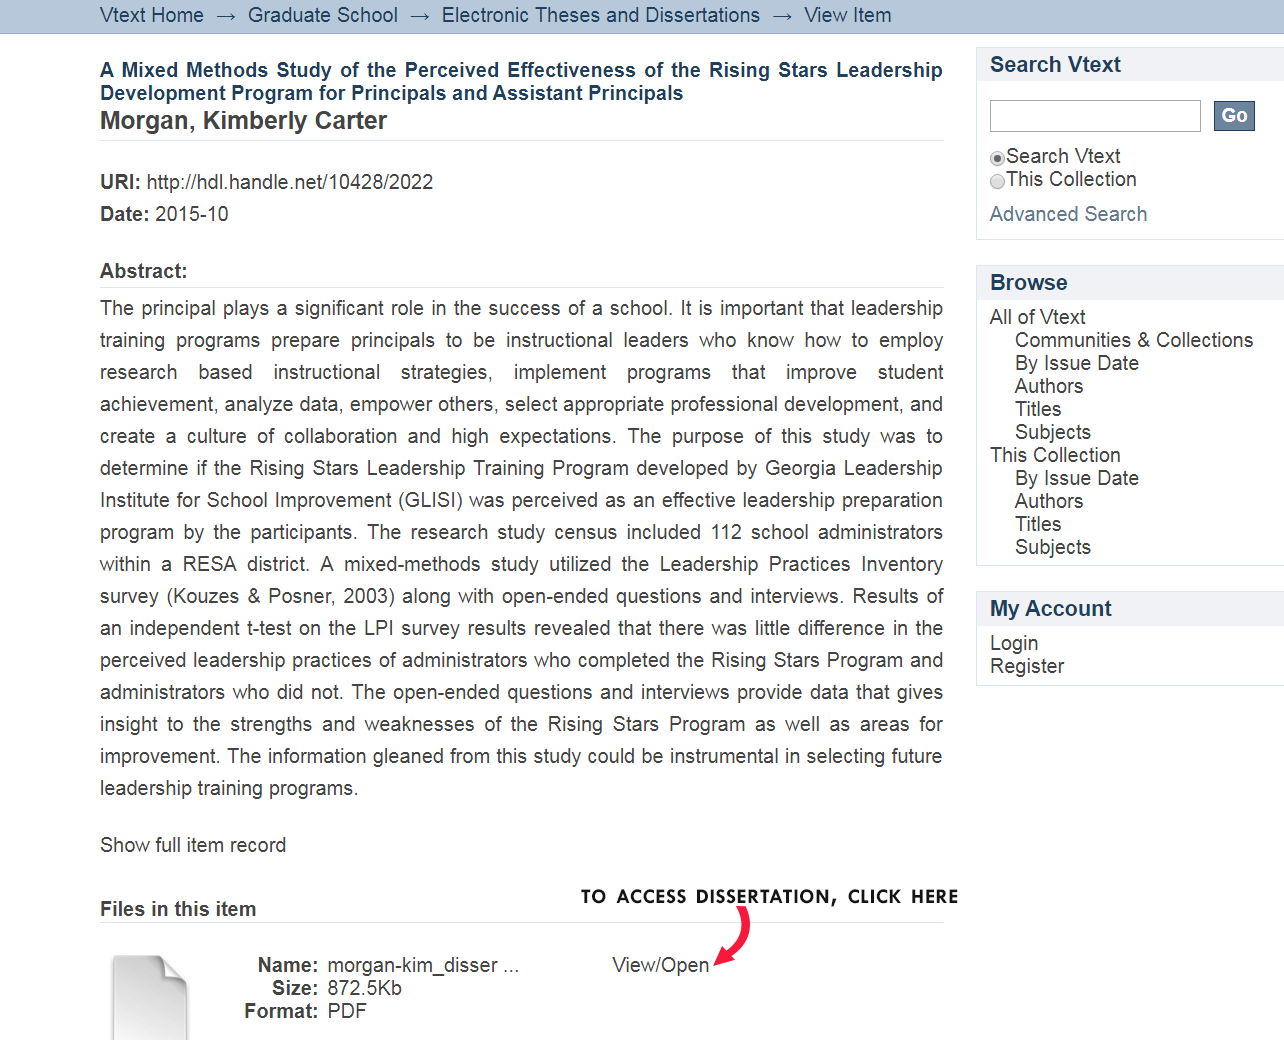 """A screenshot of a dissertation found in VText. Towards the bottom, there is an icon of a dog-eared piece of paper. An arrow with """"To access dissertation, click here"""" points to View/Open"""